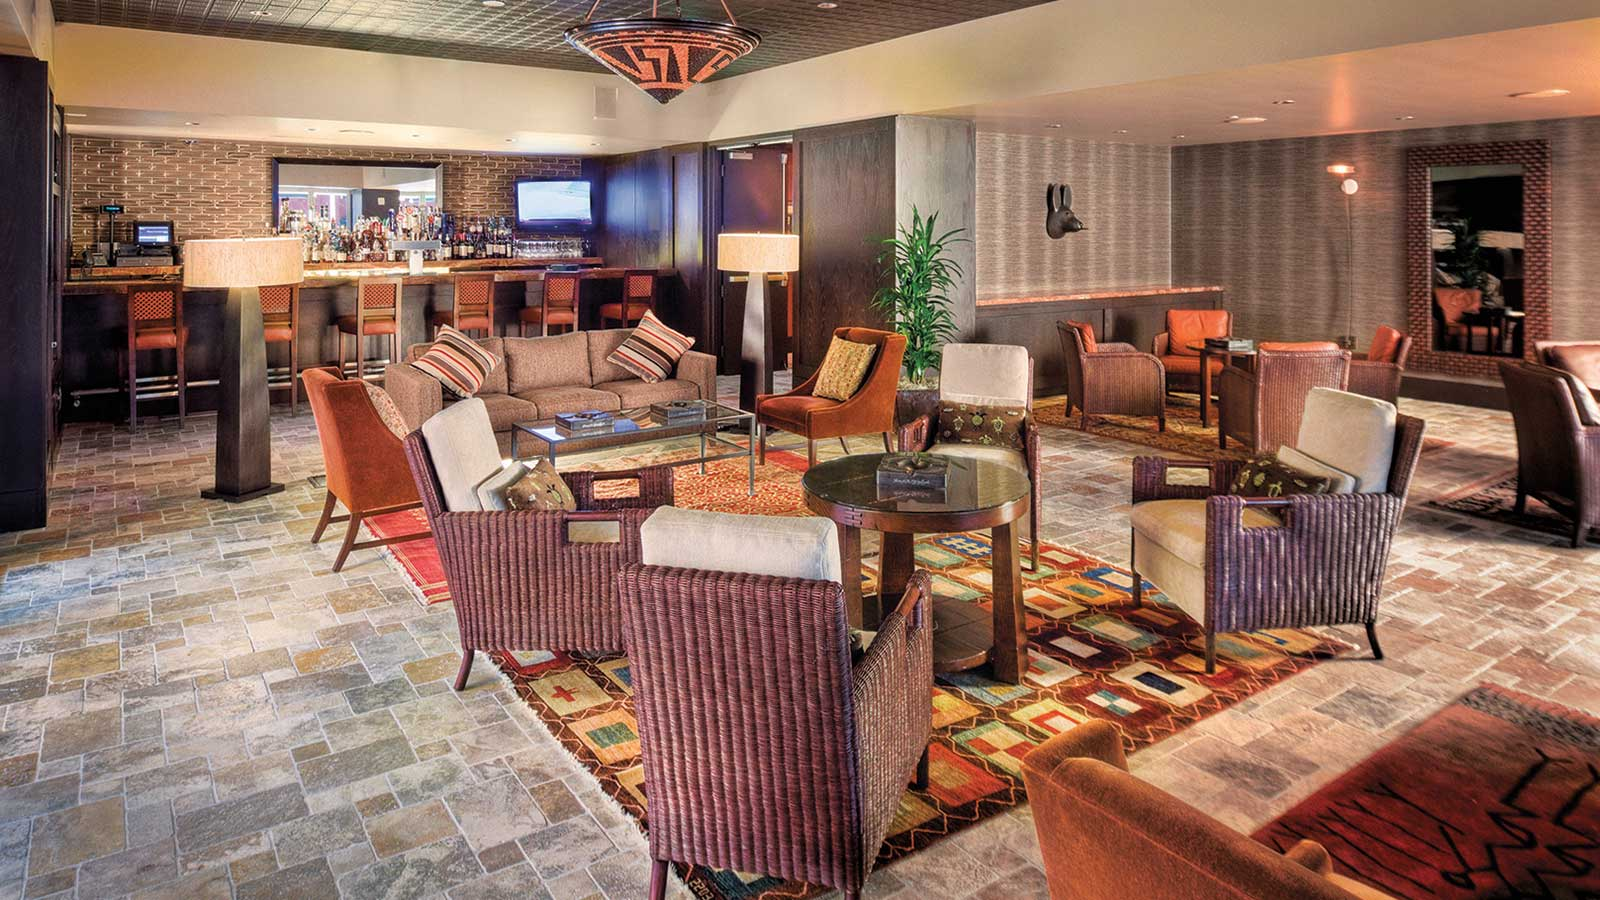 The Talking Stick Shadows Cigar Lounge is a cigar aficionado's haven, with an impressive selection of Scotches and cigars.